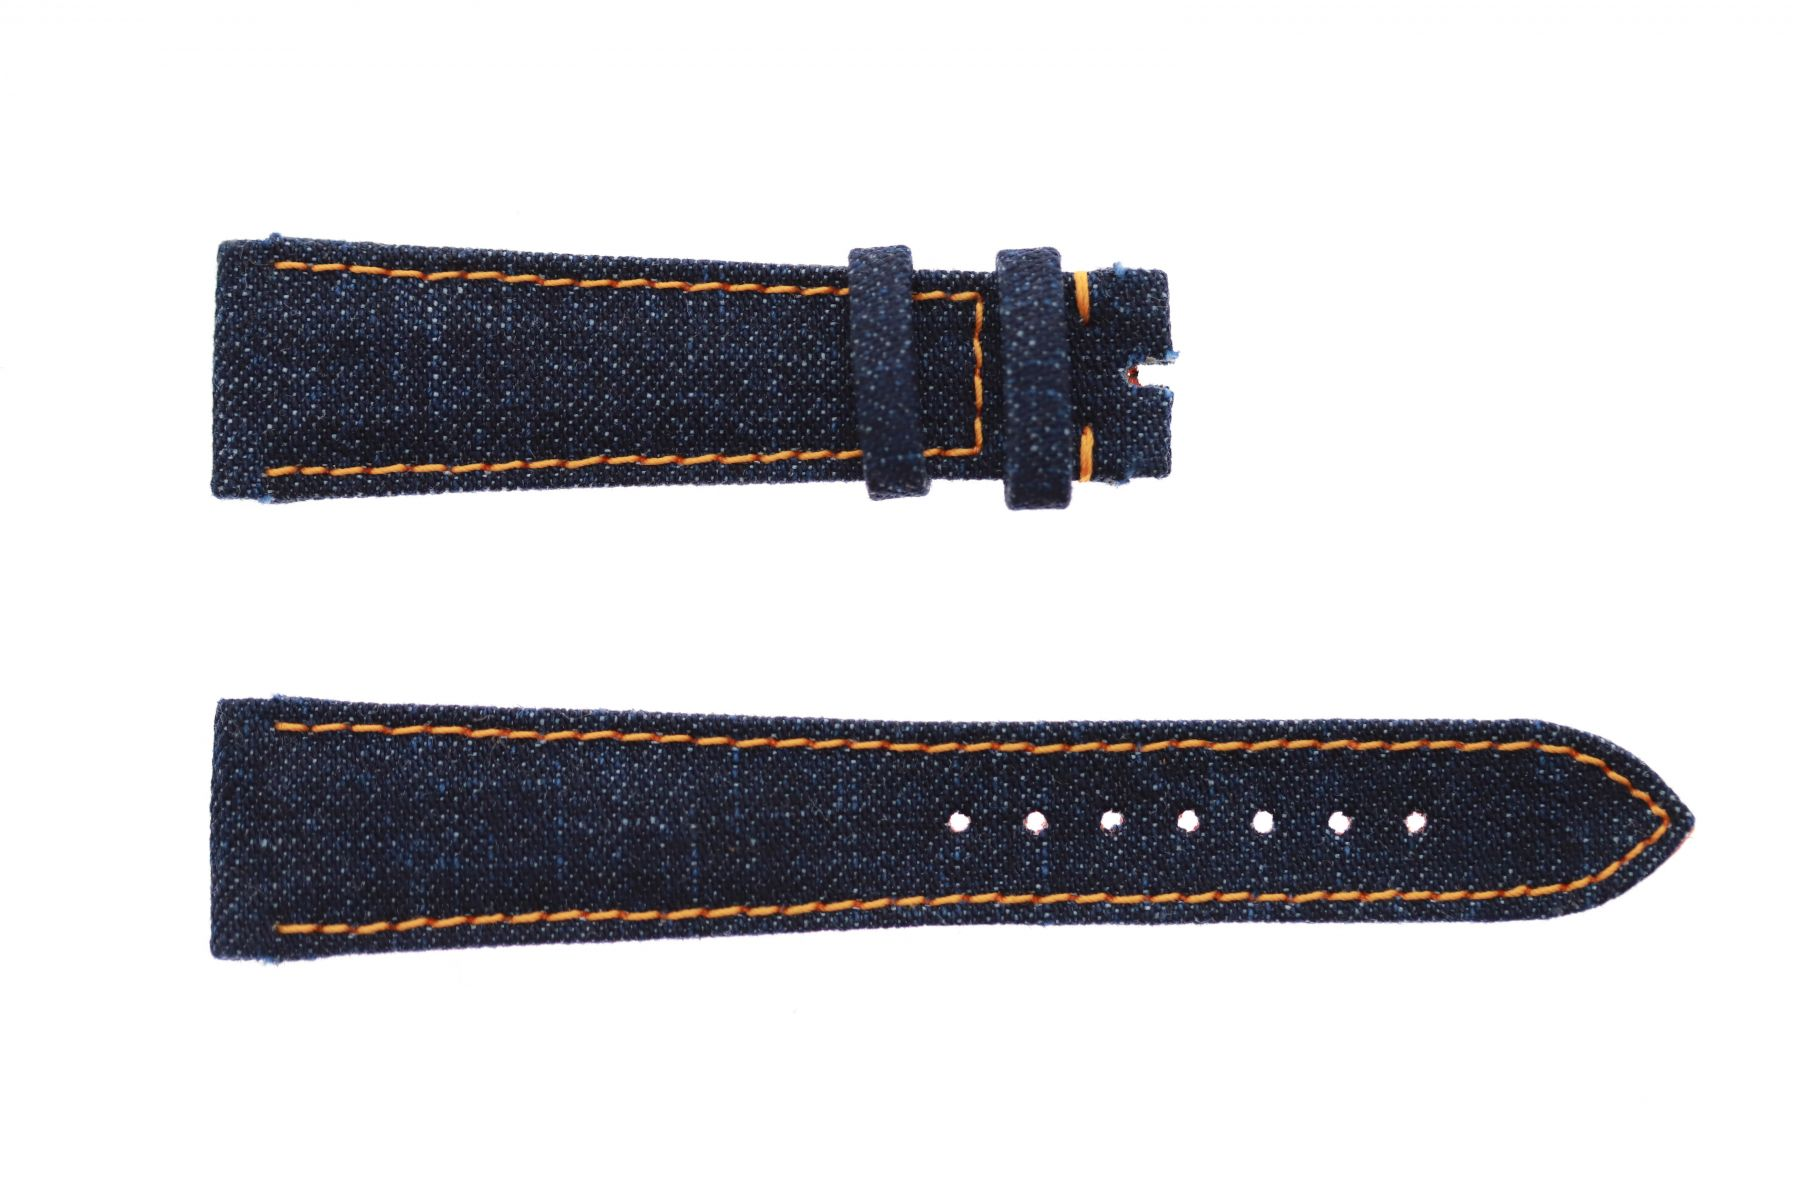 Dark Blue Japanese Denim strap 20mm Rolex Daydate, Dayjust style. Orange stitching